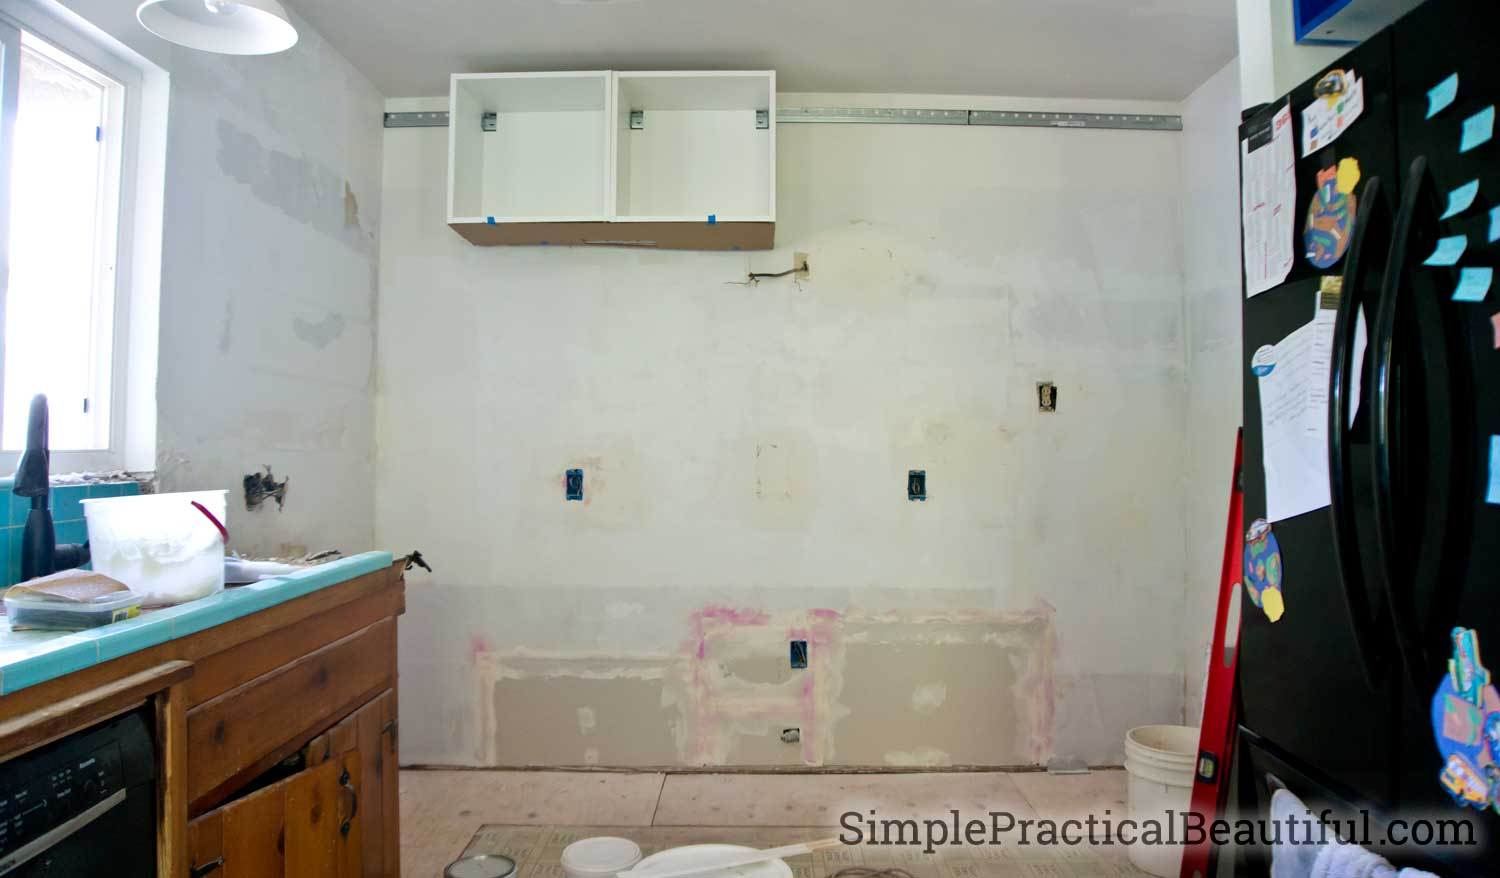 ... Doing A Kitchen Demolition In Phases To Keep A Working Sink